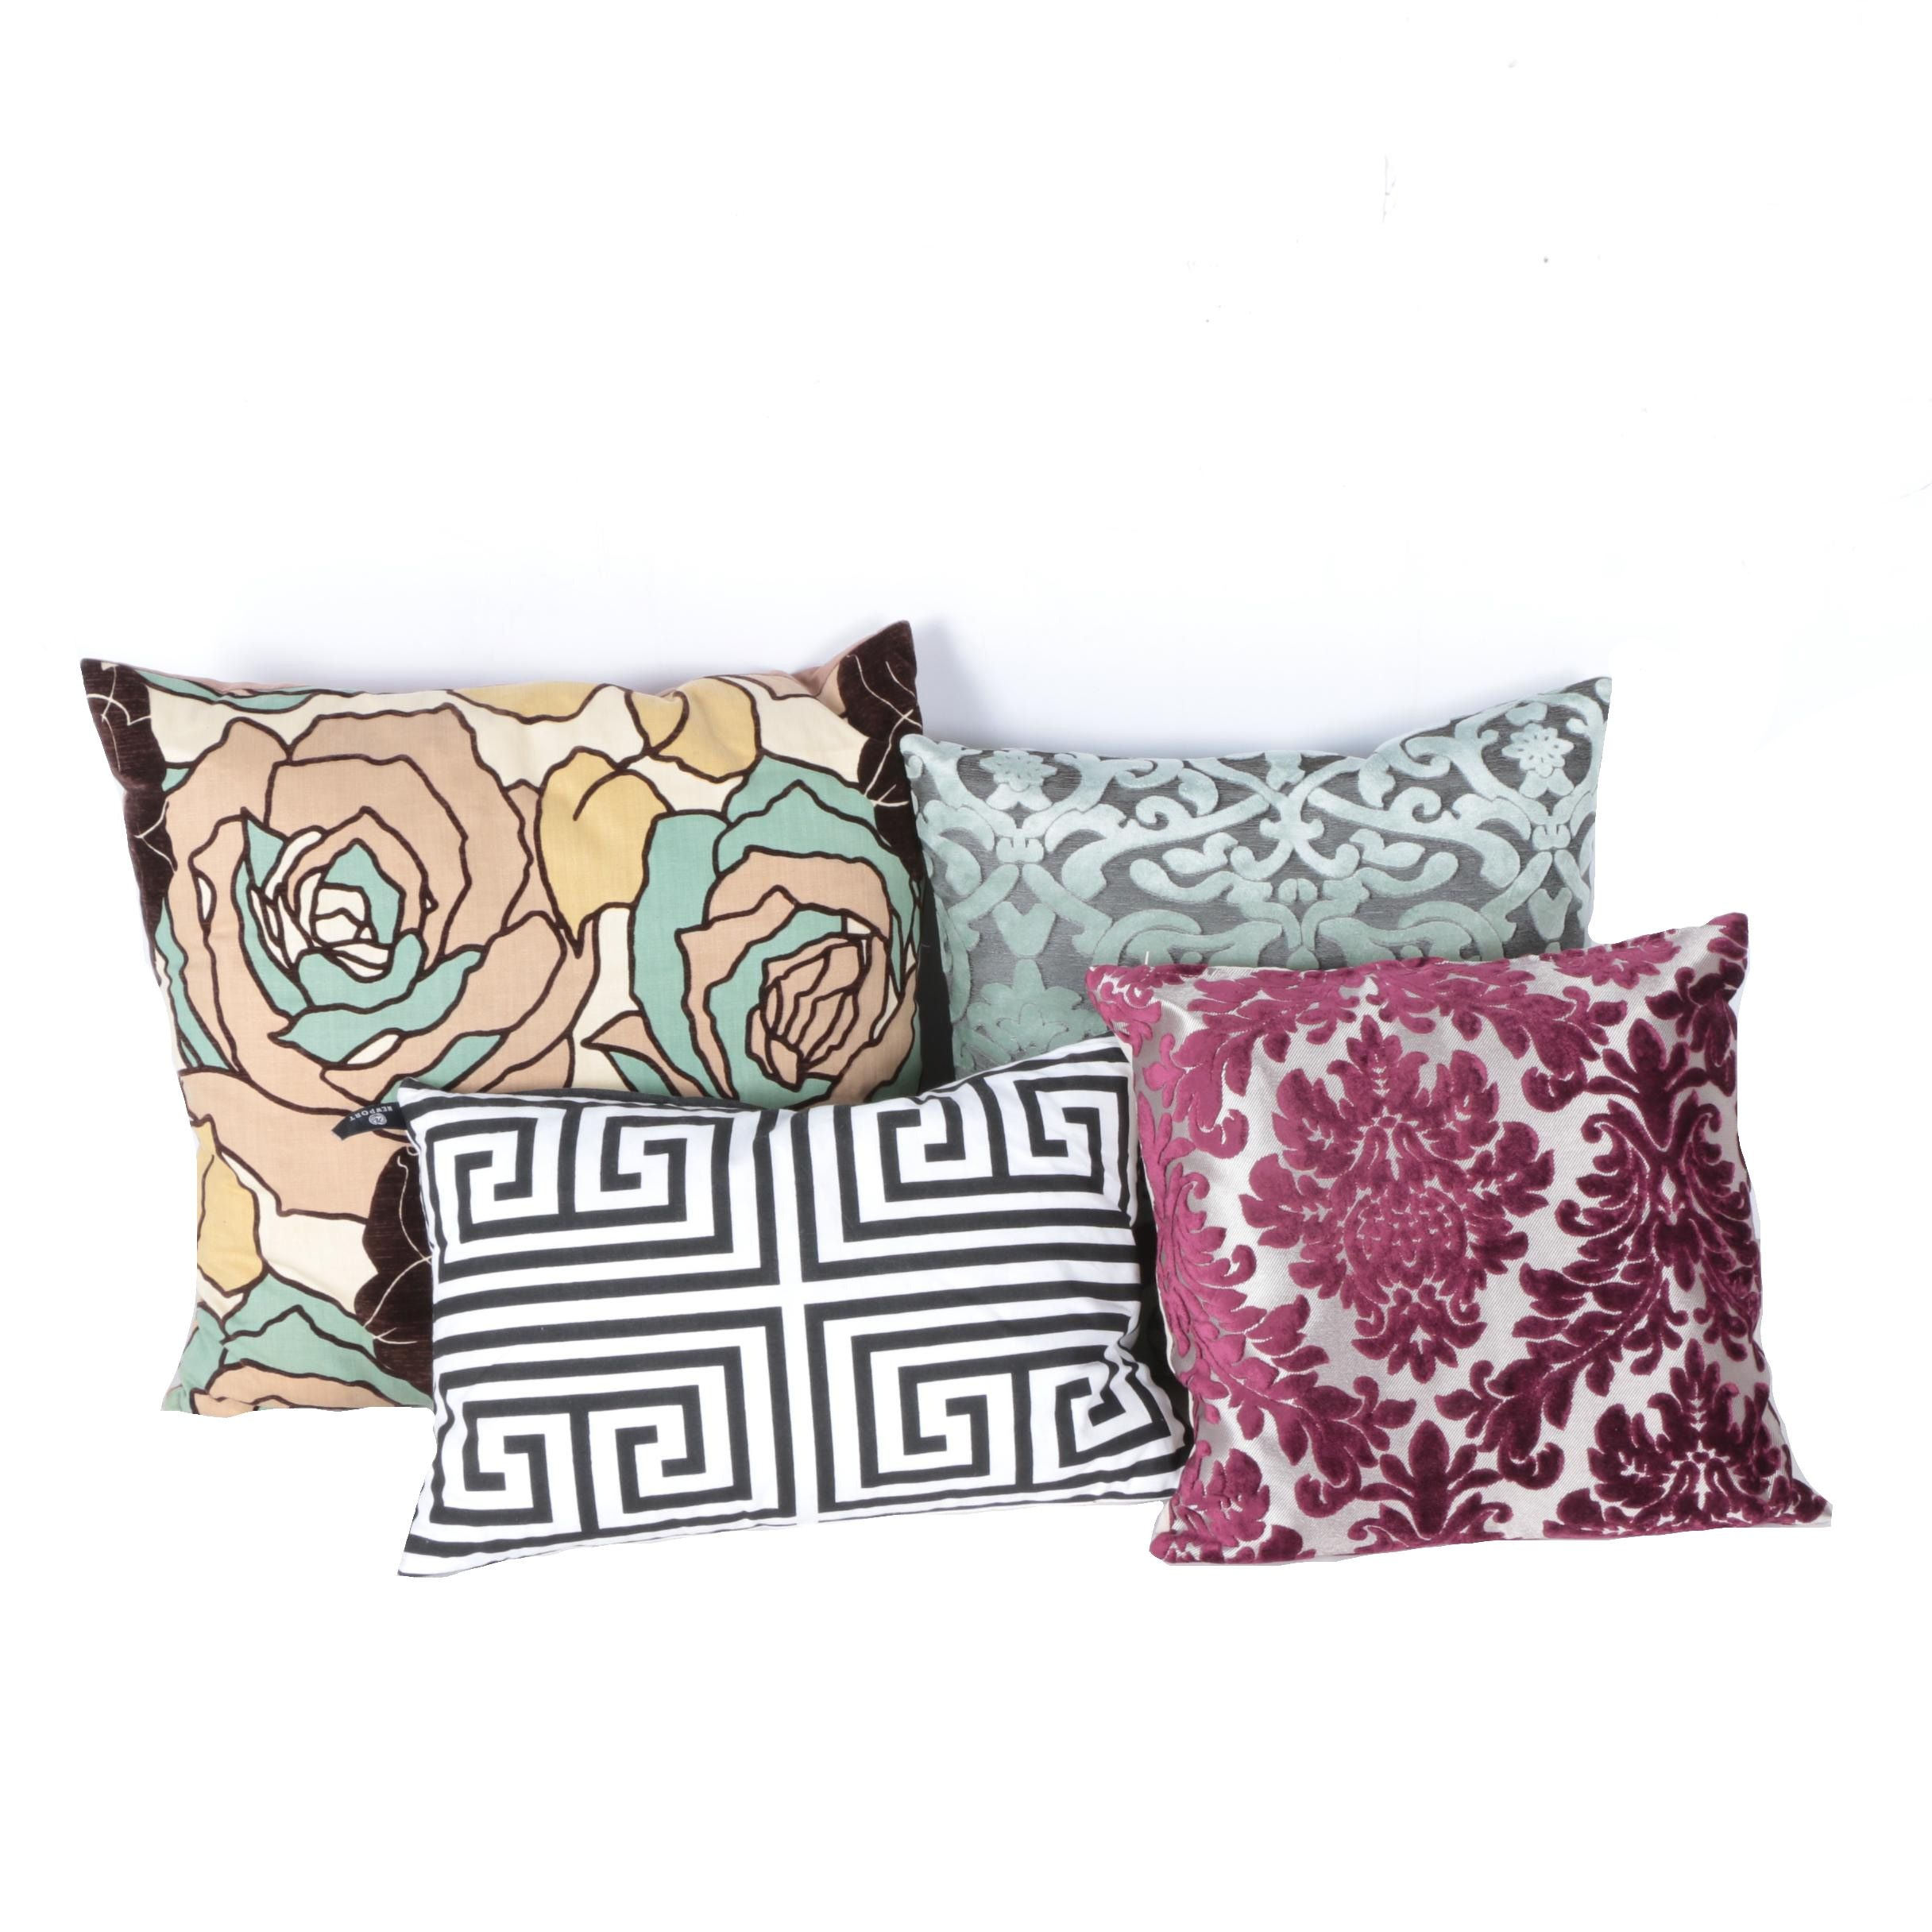 Patterned Accent Pillows including Rodeo Home